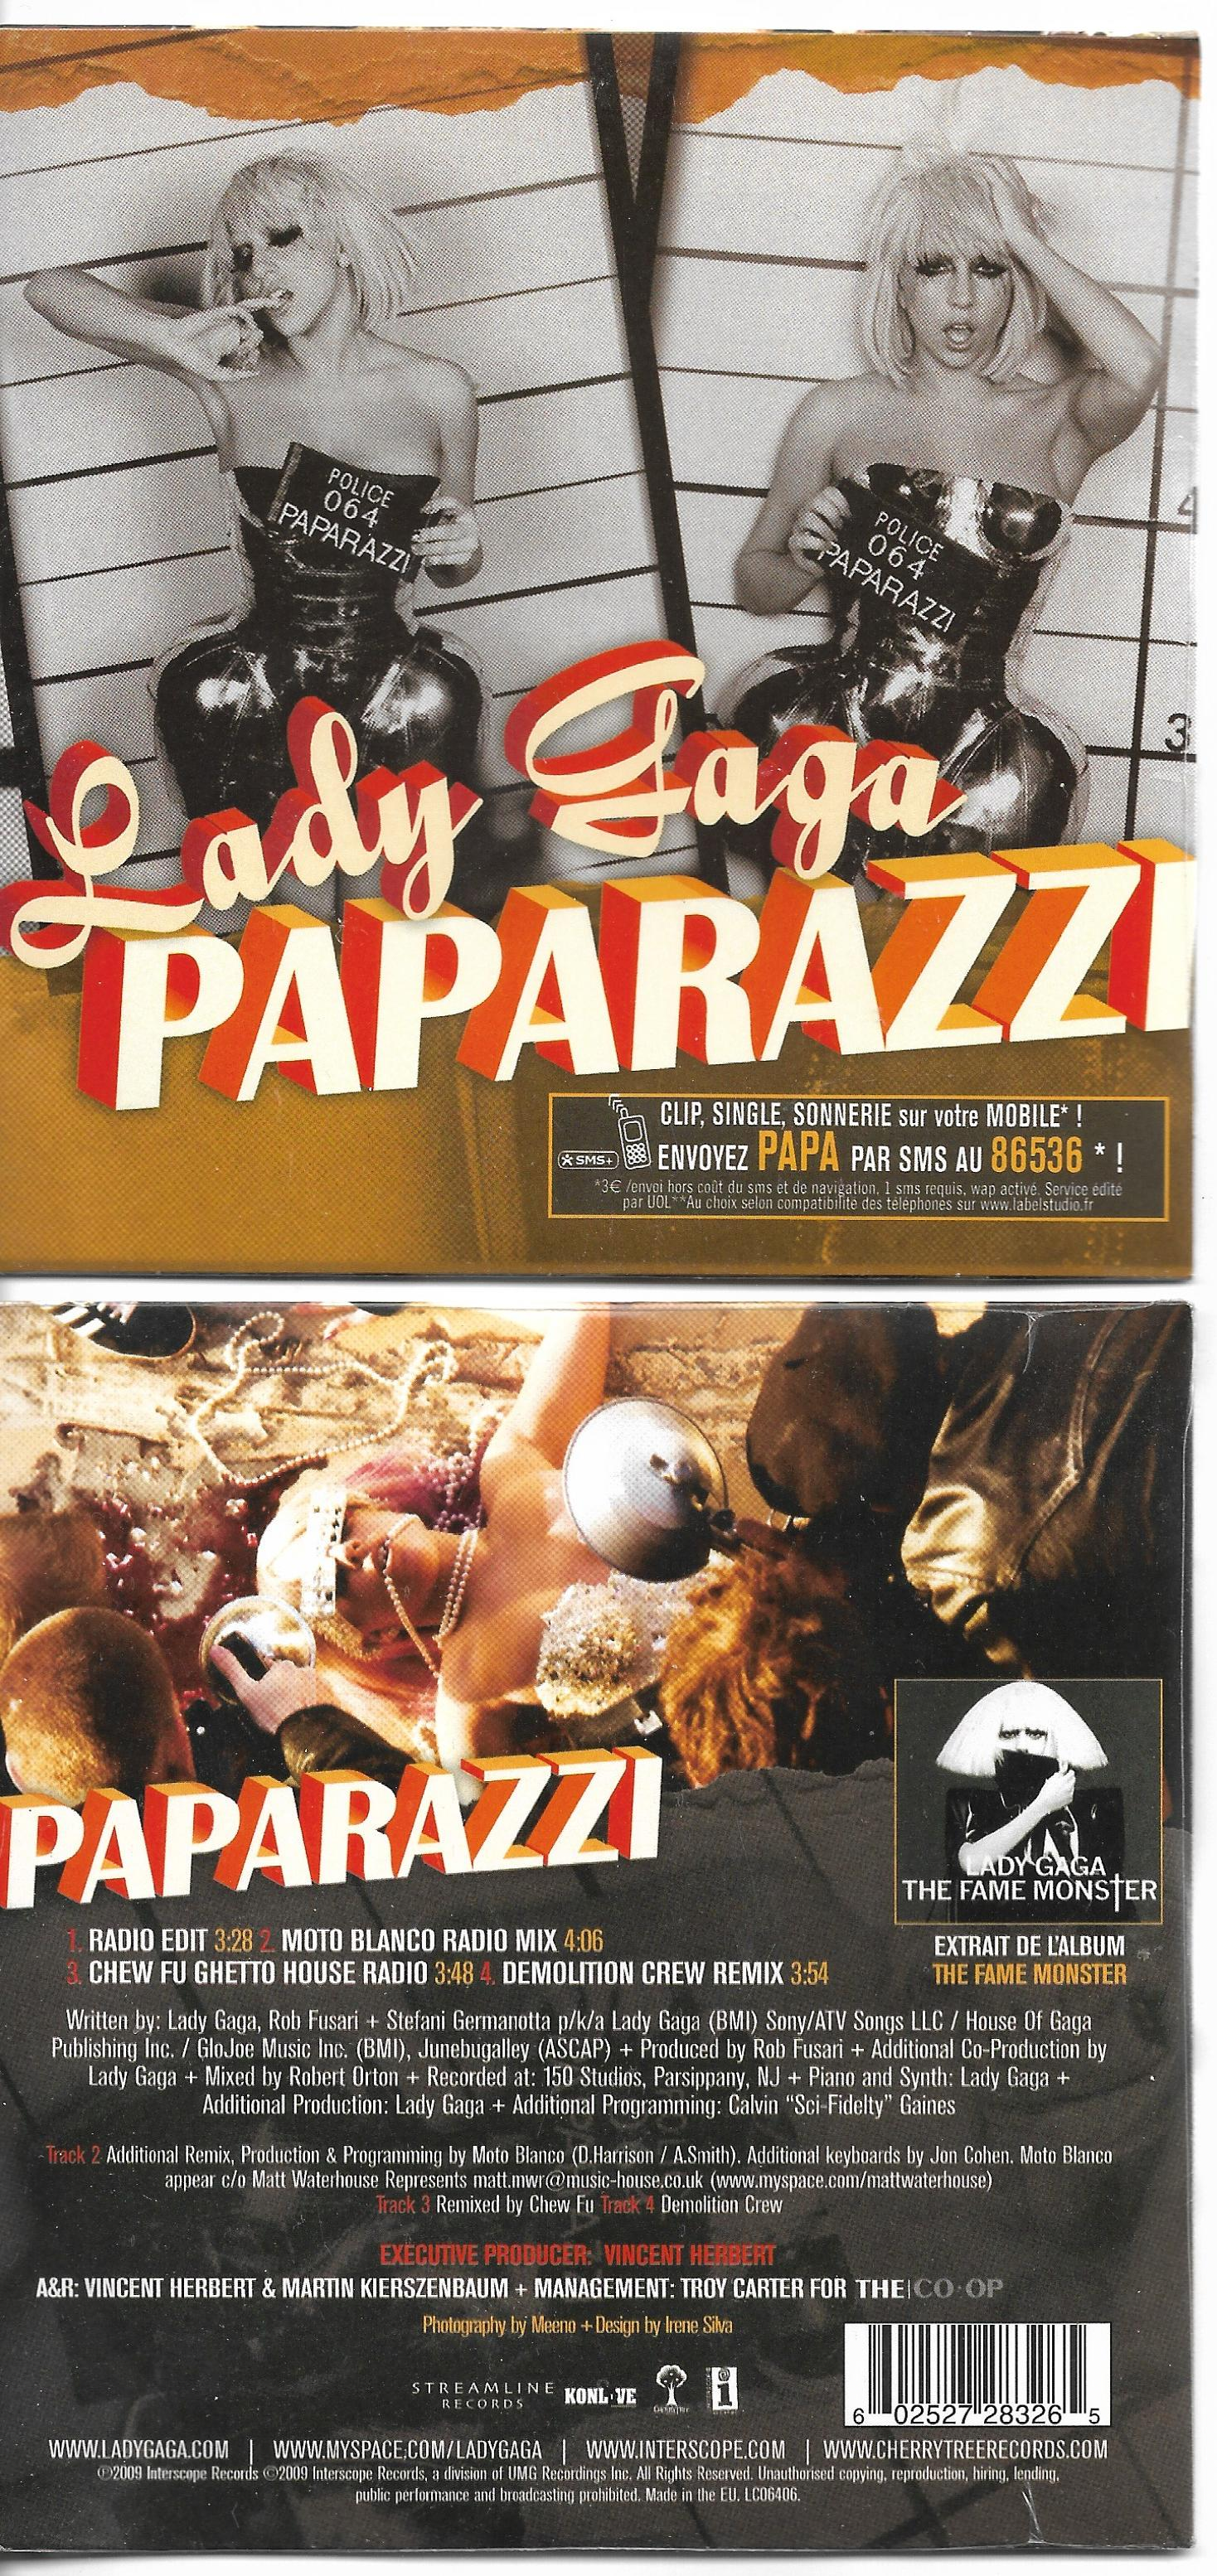 Lady GAGA - Paparazzi Card Sleeve 4 Tracks